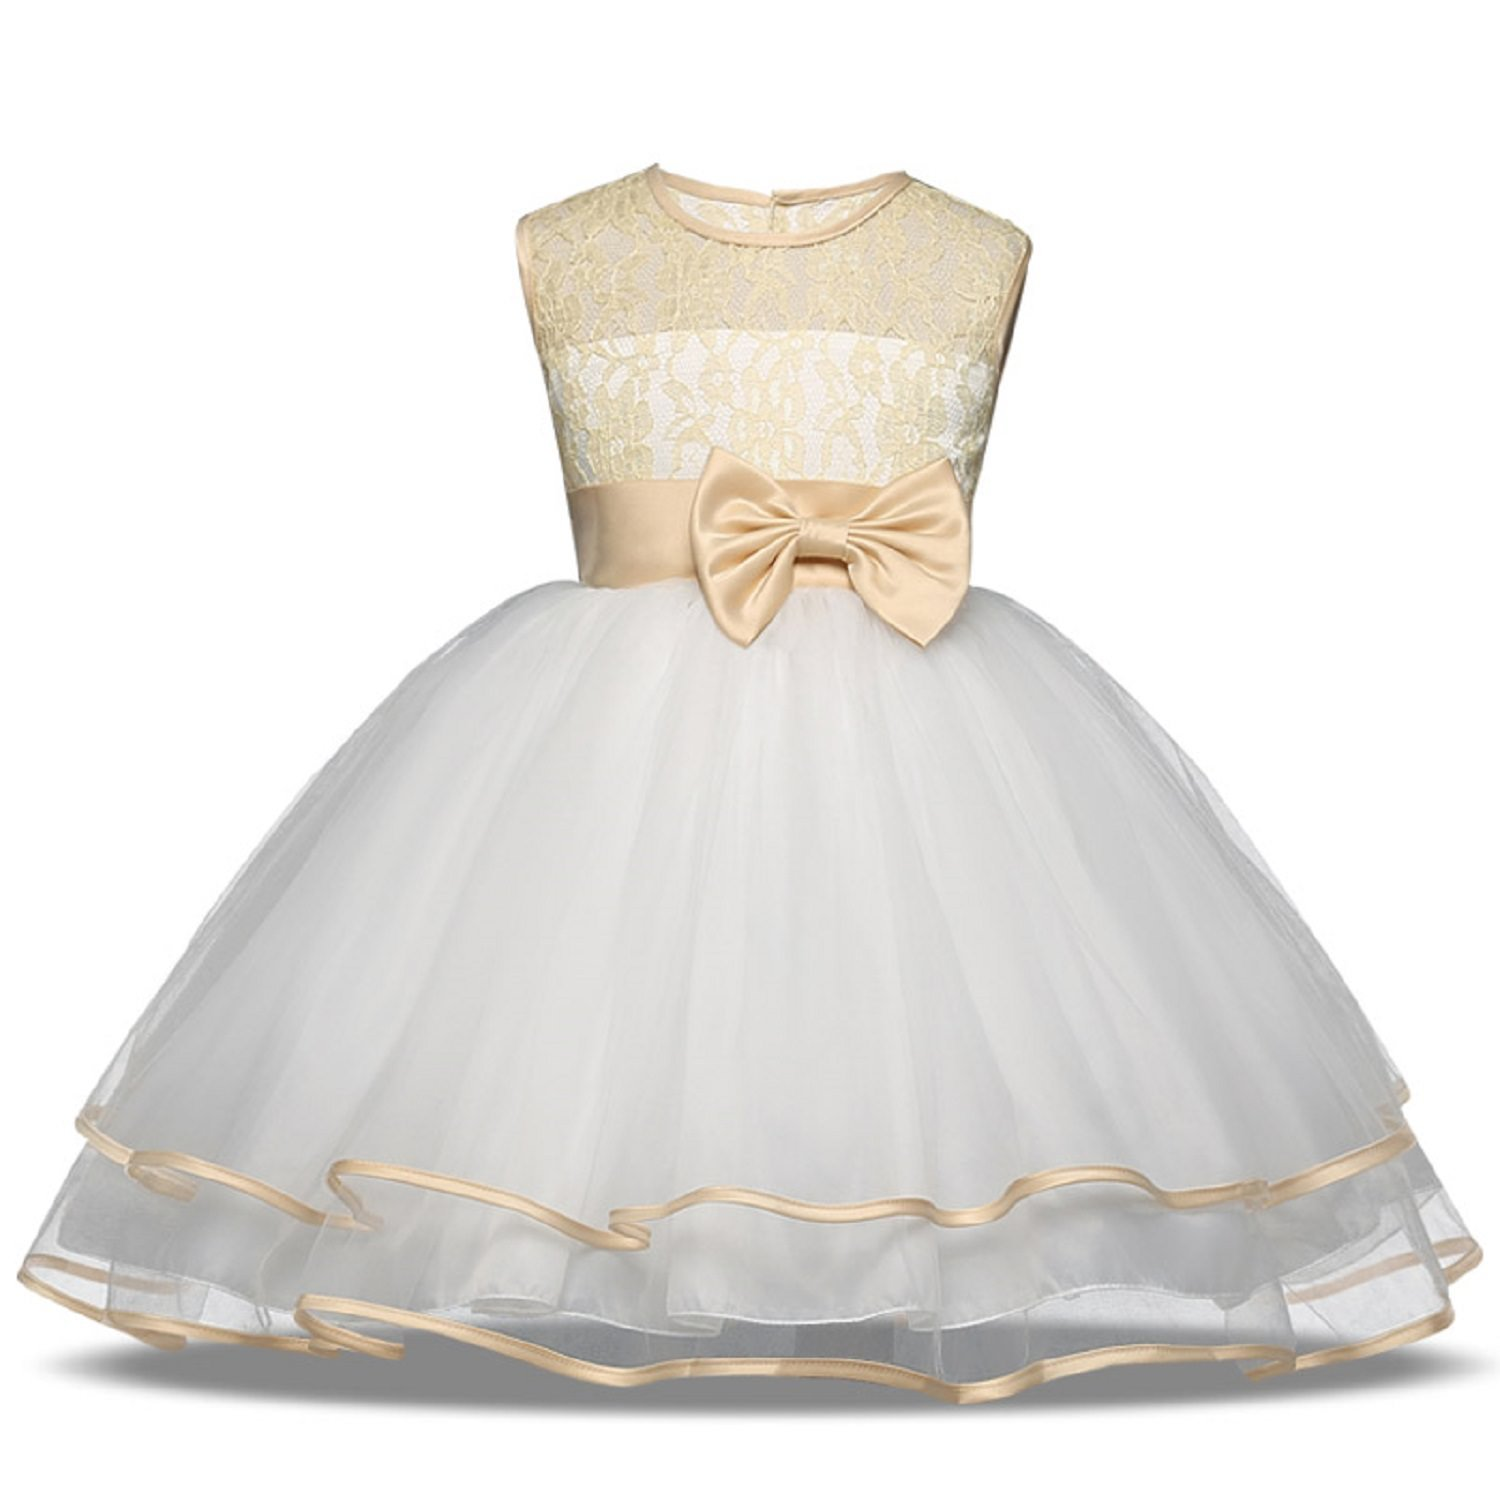 b651c76da868e SOFYANA Baby – Girl's Polyester Lace Princess Birthday Party Wear Frock  Dress for Girls_White and Golden Flower Net_190_5-6 Years Kidswear